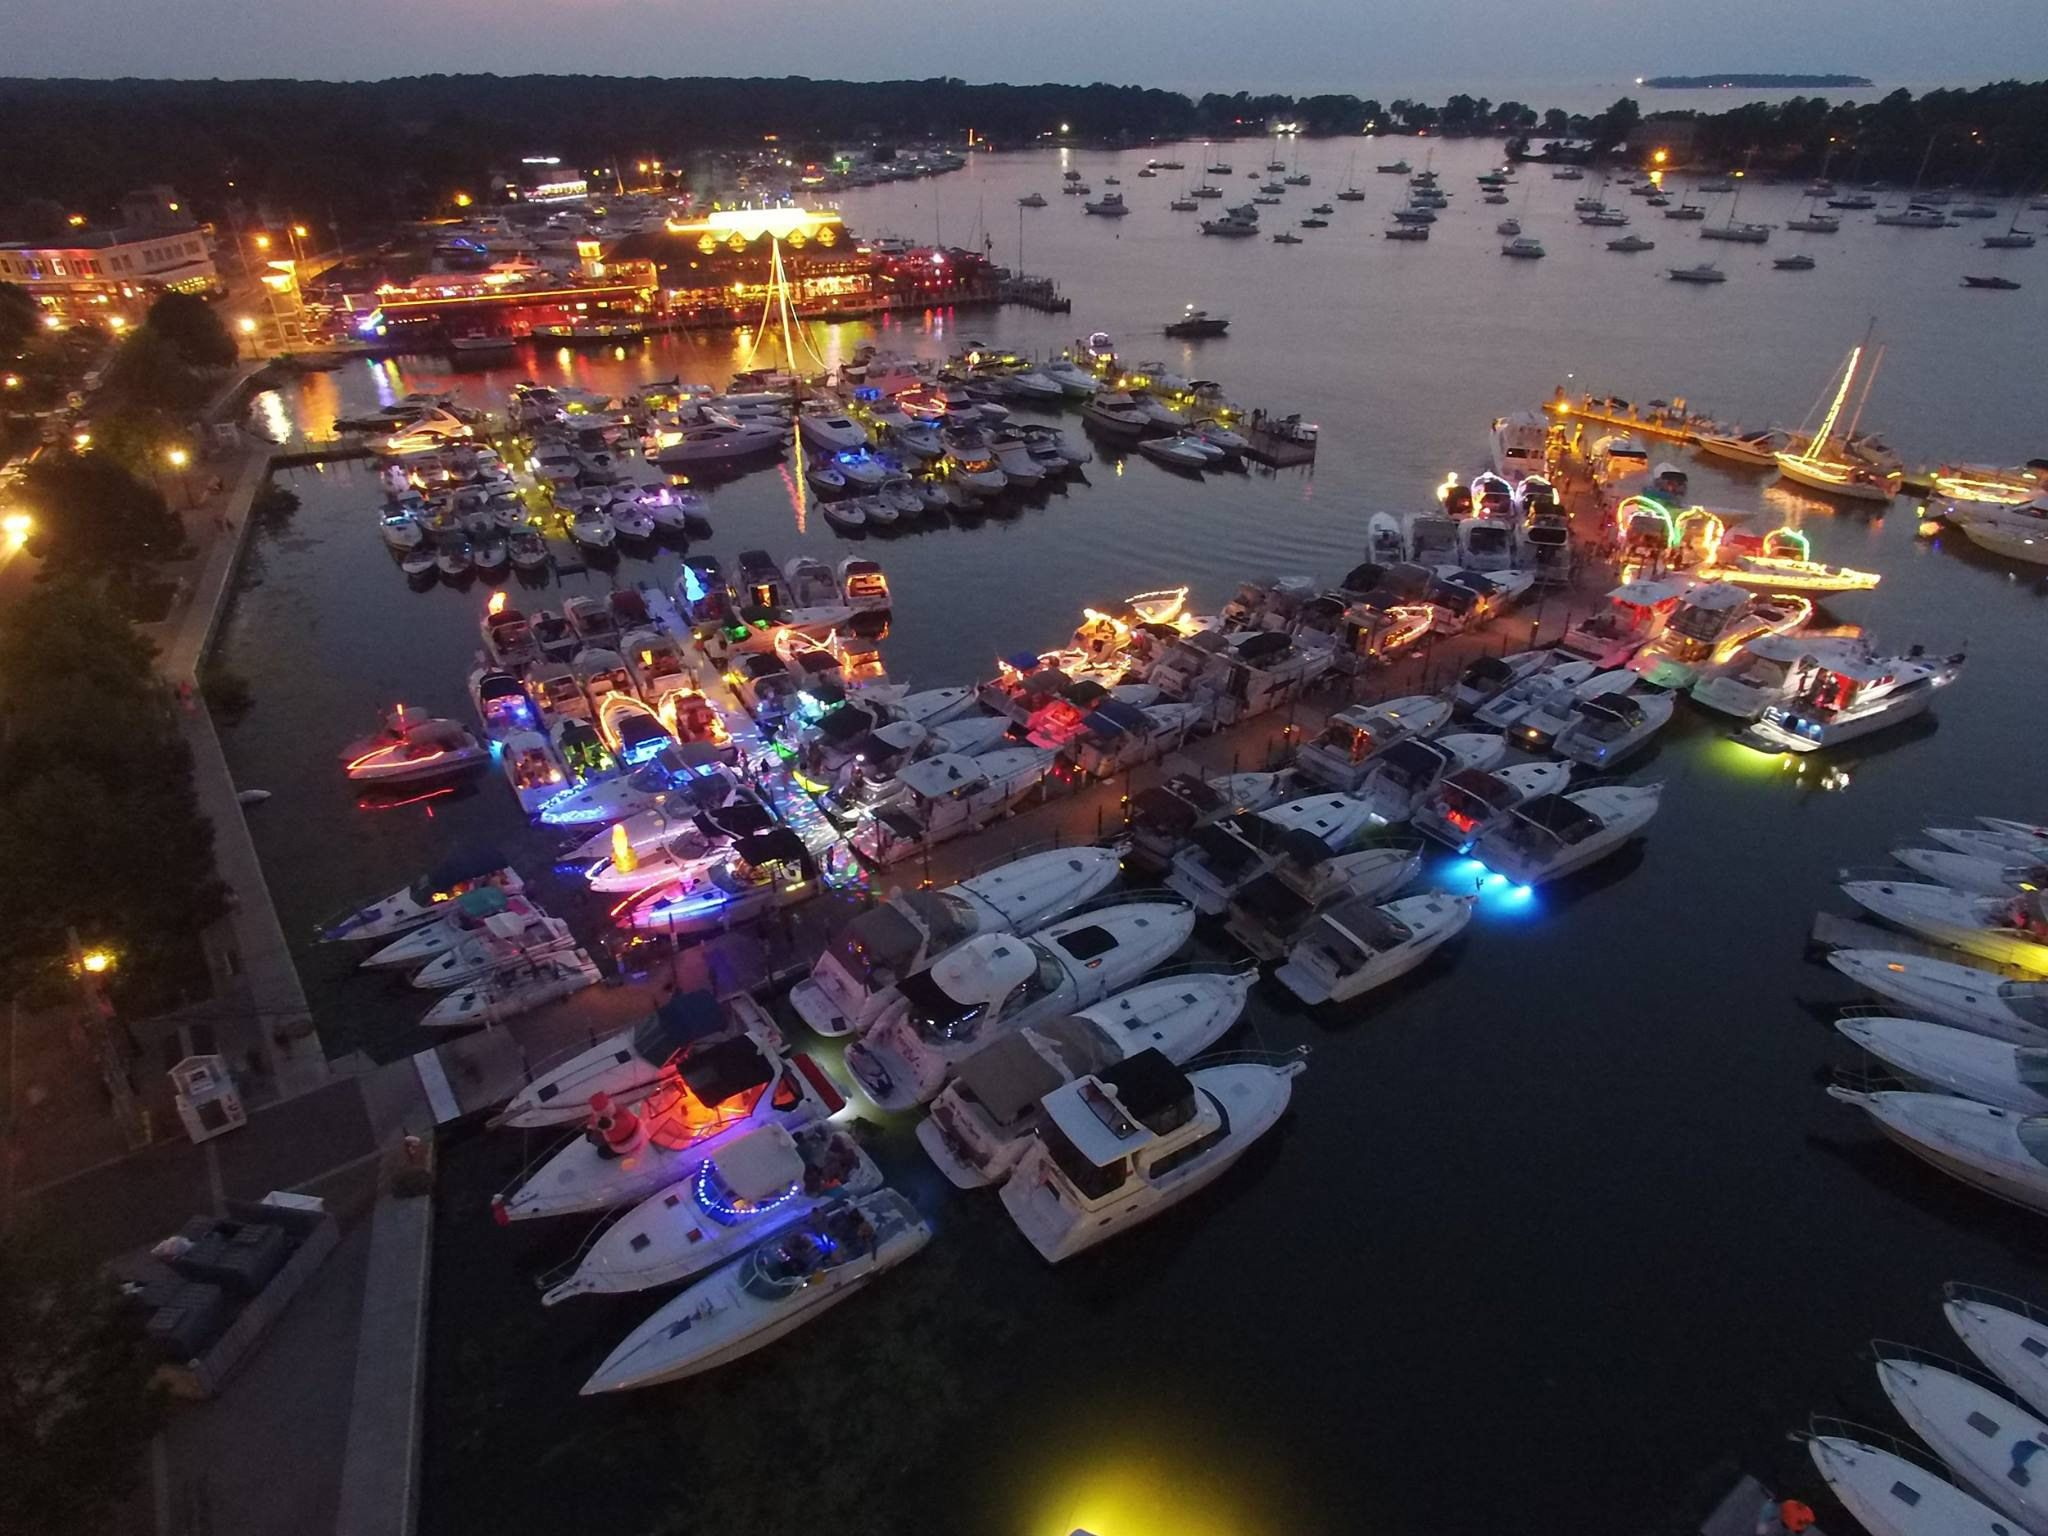 Where to spend July 4 in Ohio?